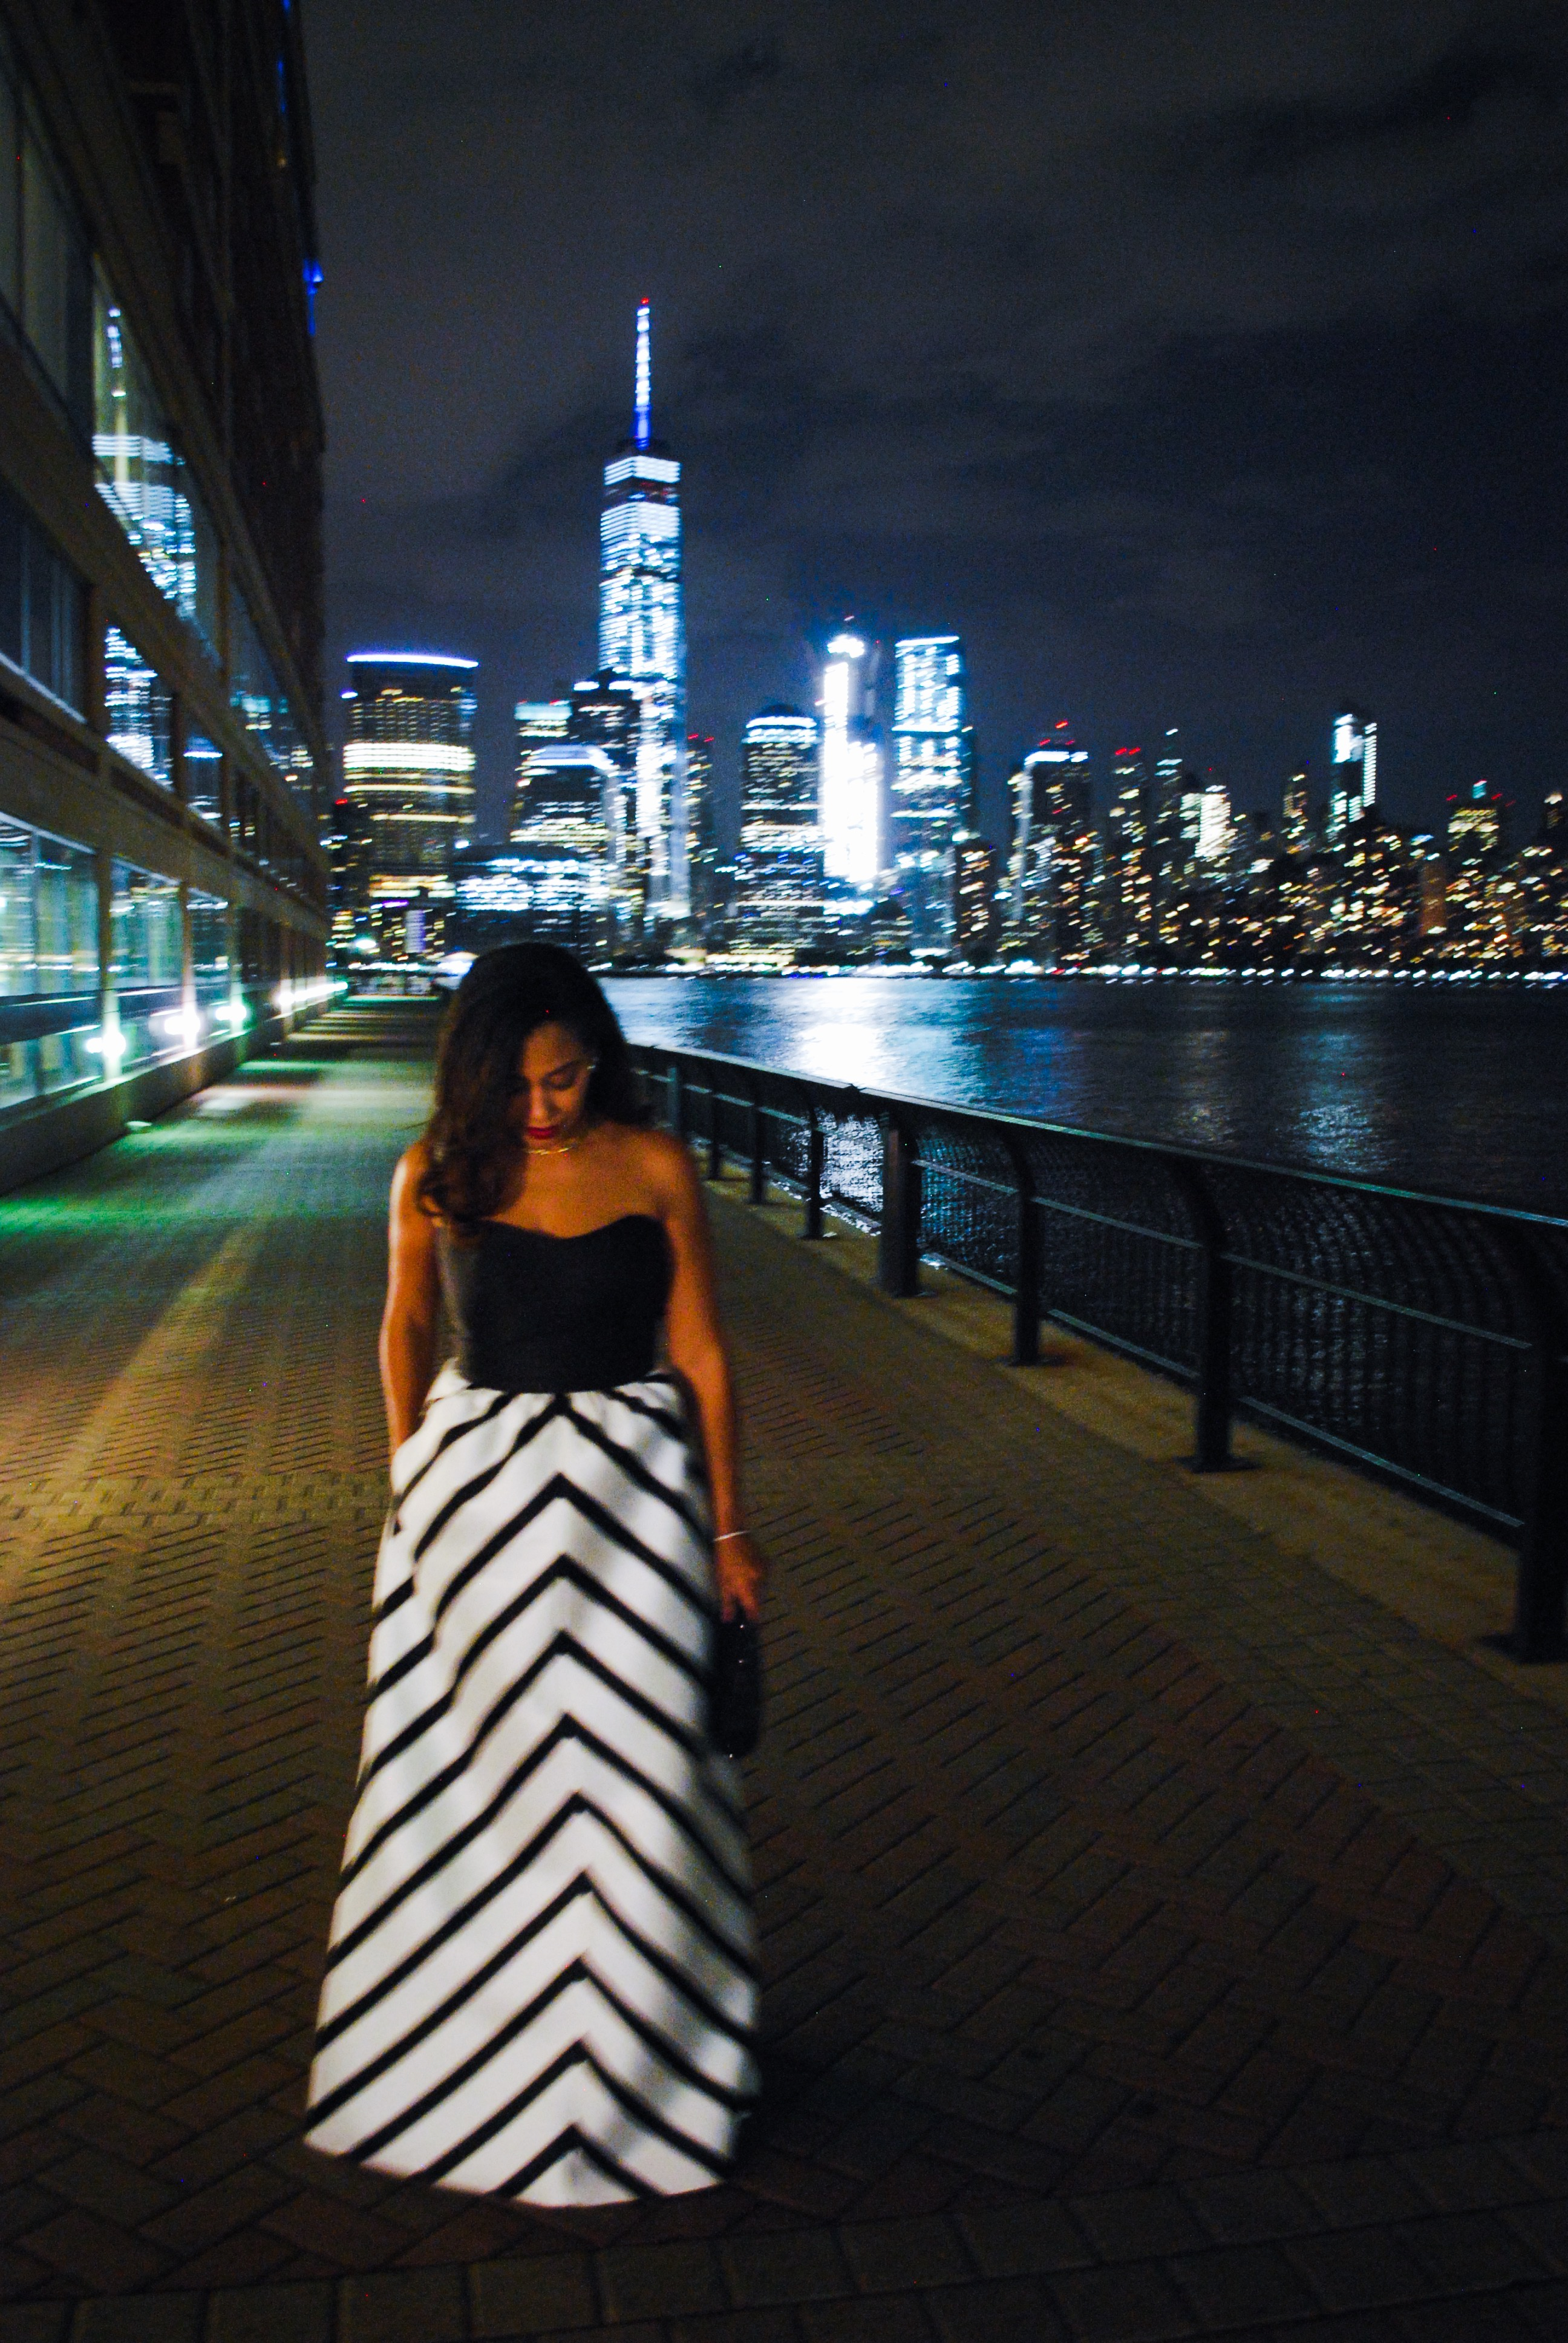 This Season's Gold // Moments - New York City Freedom Towe